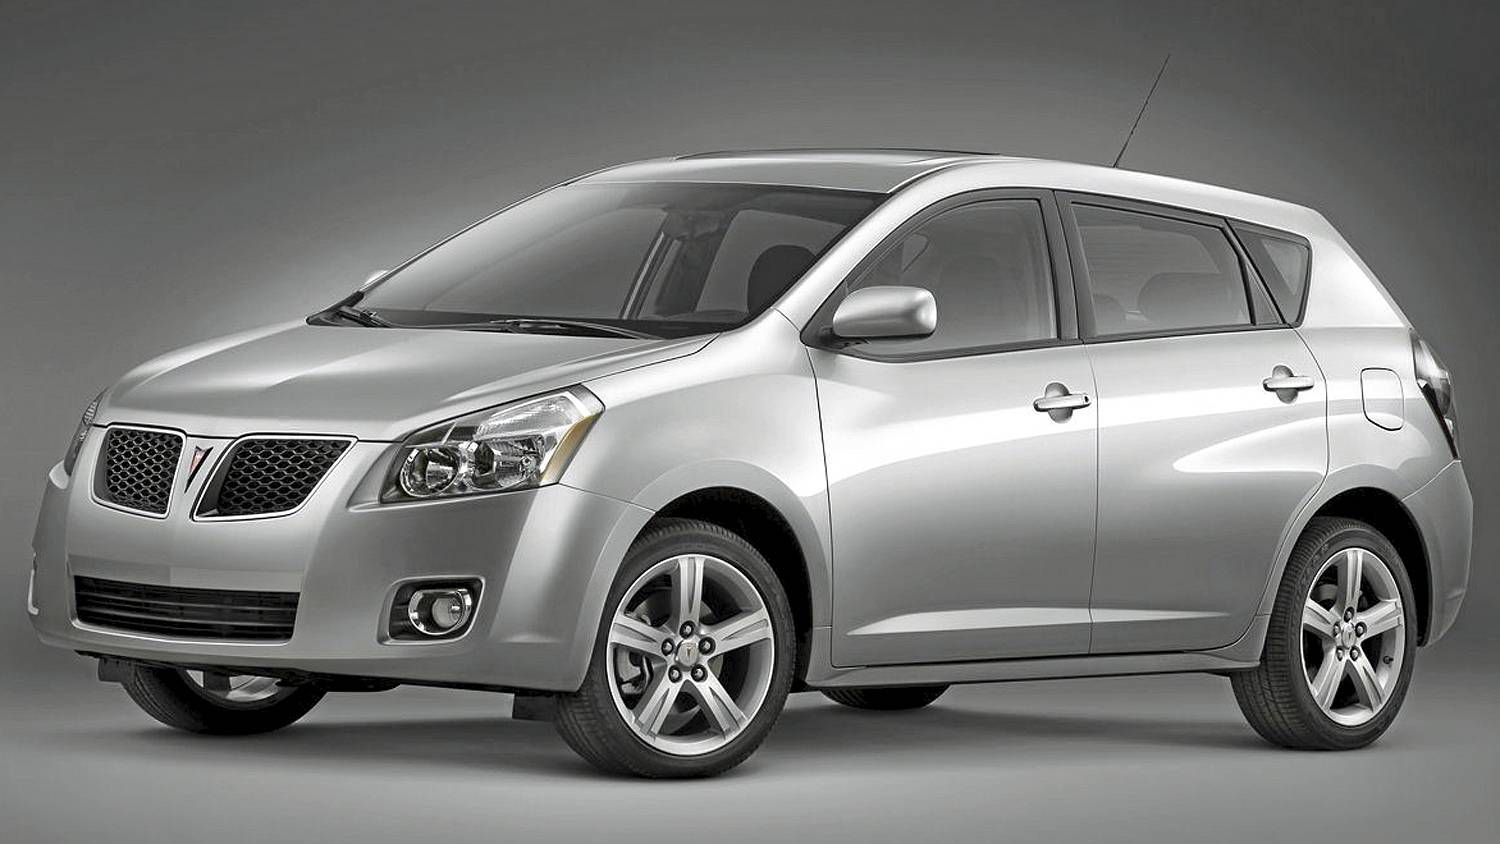 Dearly departed Pontiac Vibe lives on as the Matrix - The